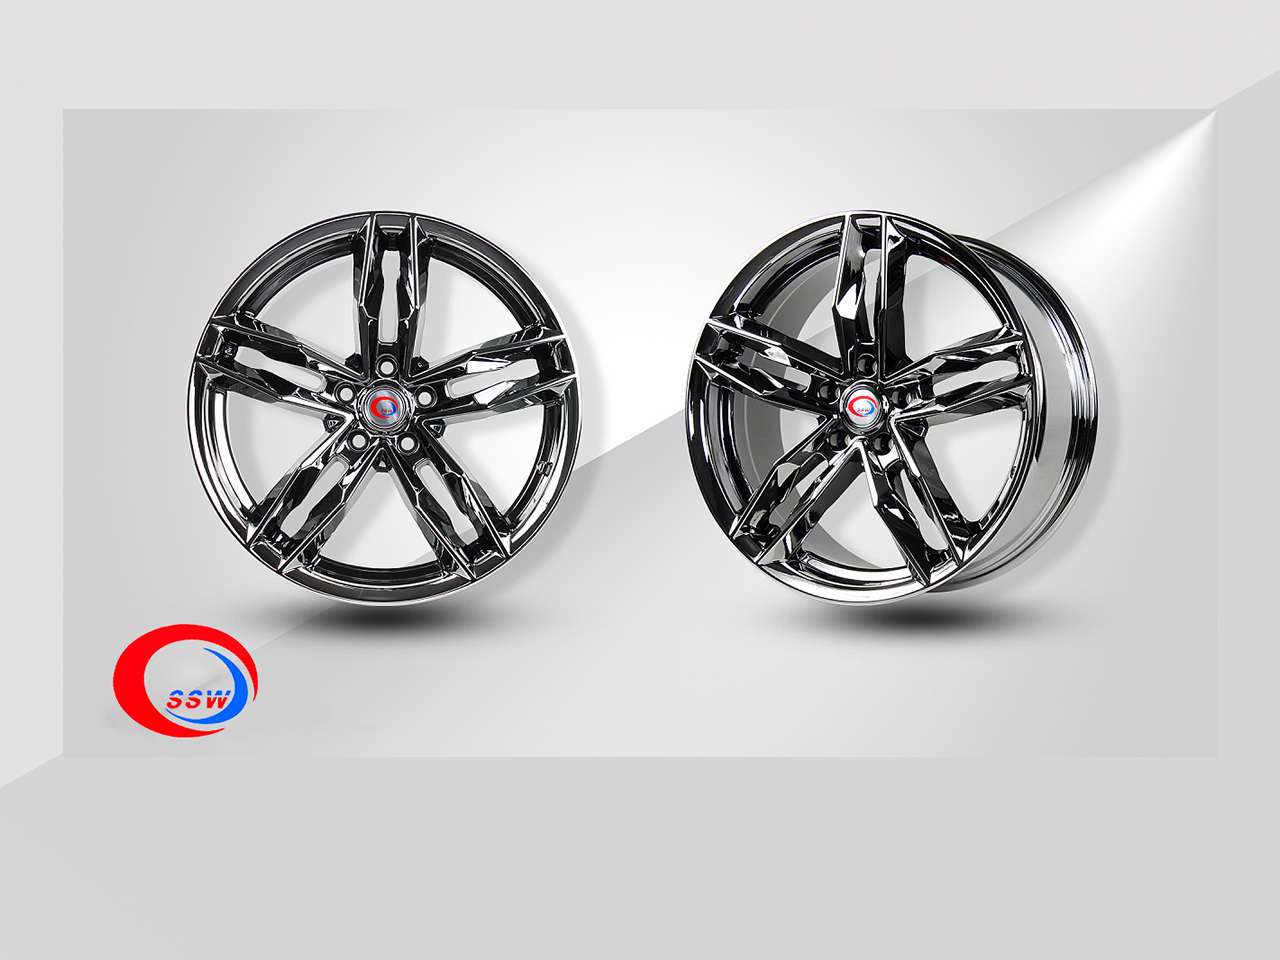 16-28 inches wheels aluminum alloy wheels a18